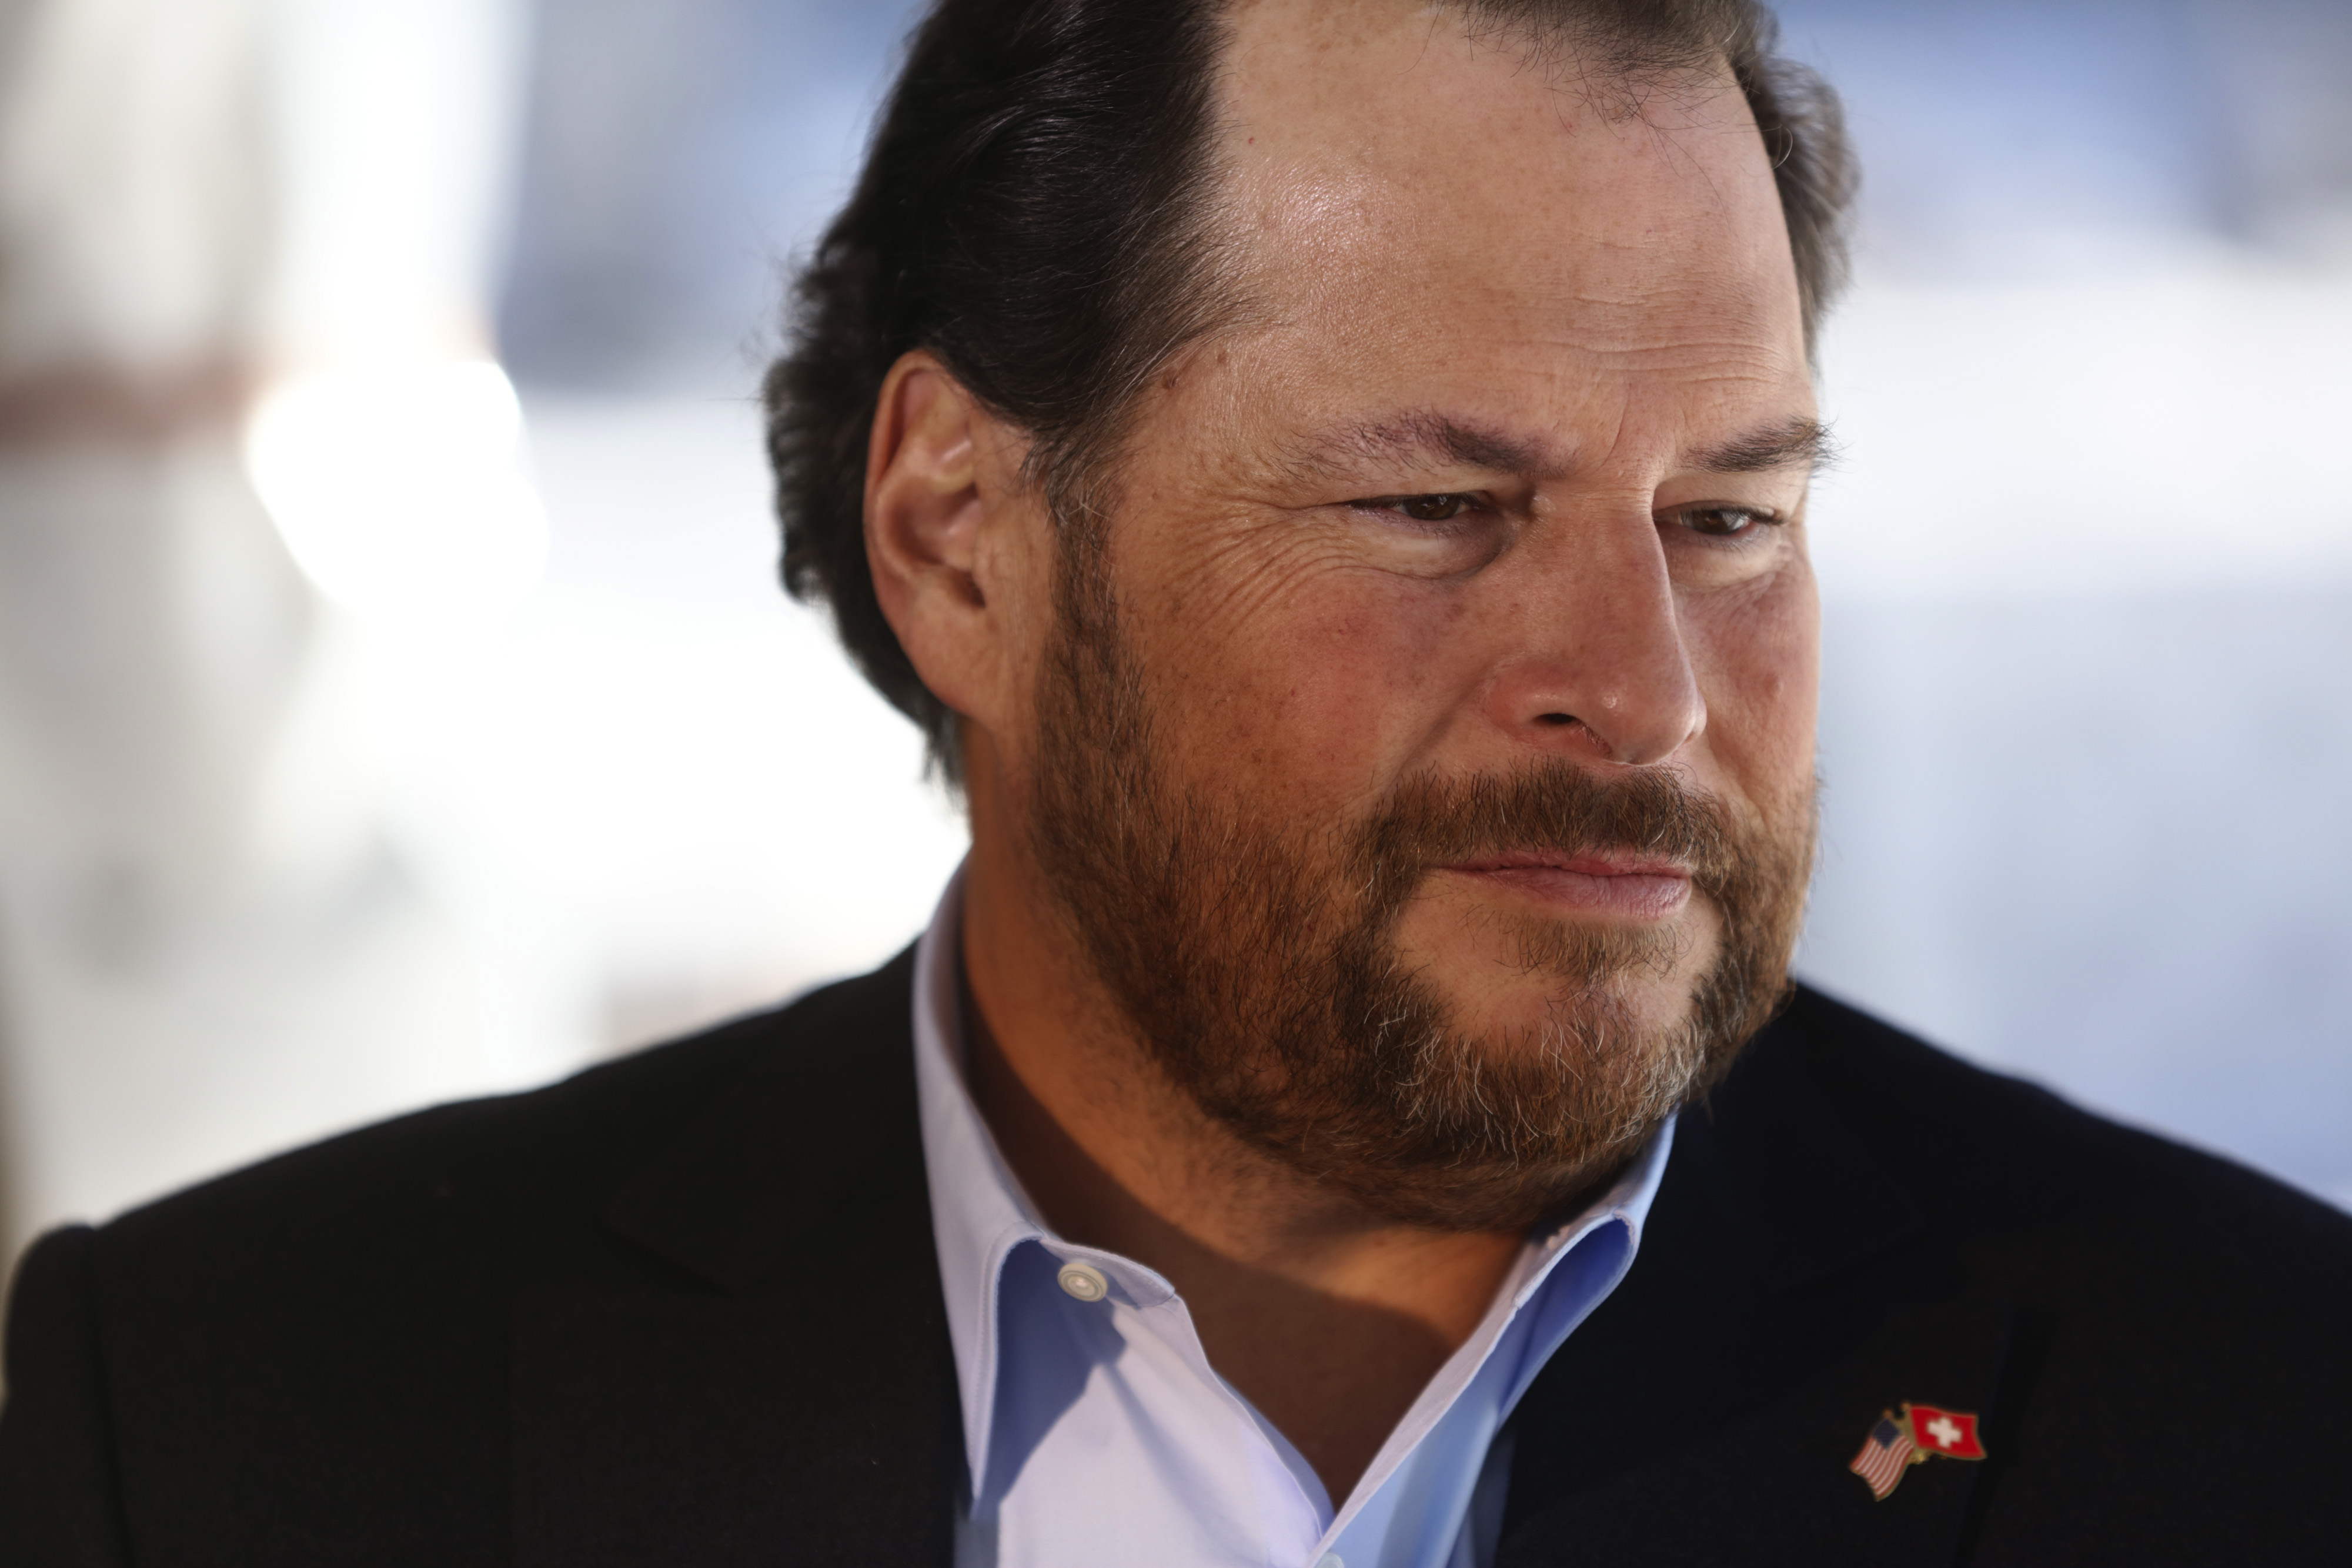 Marc Benioff looks on during a Bloomberg Television interview at the World Economic Forum in Davos, Switzerland, on Jan. 21, 2016.